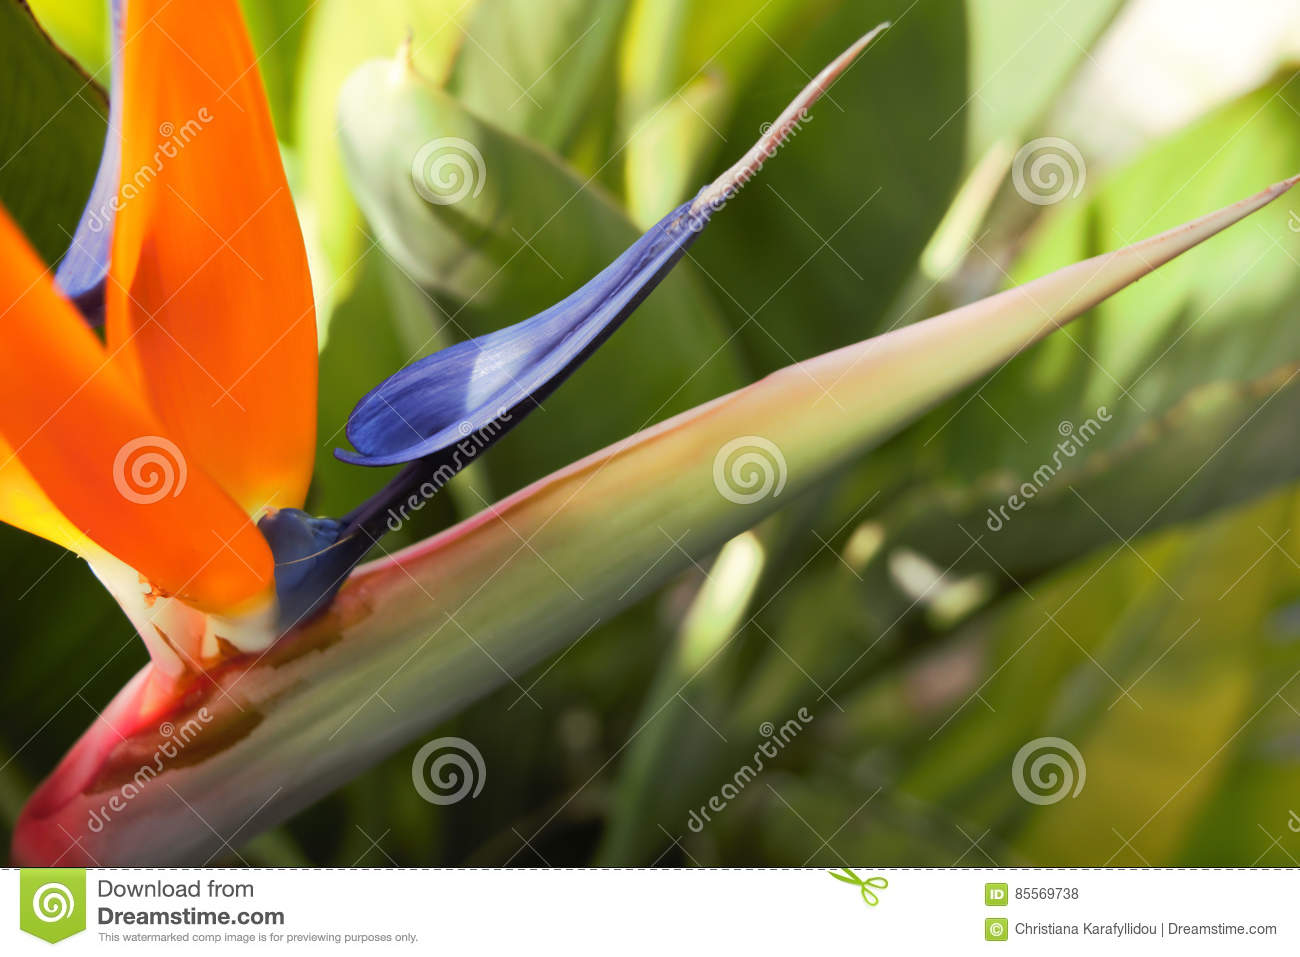 Strelitzia bird of paradise flower stock photo image of nature a common name of the genus strelitzia is bird of paradise flowerplant it is one of the most beautiful exotic flowers native to south africa izmirmasajfo